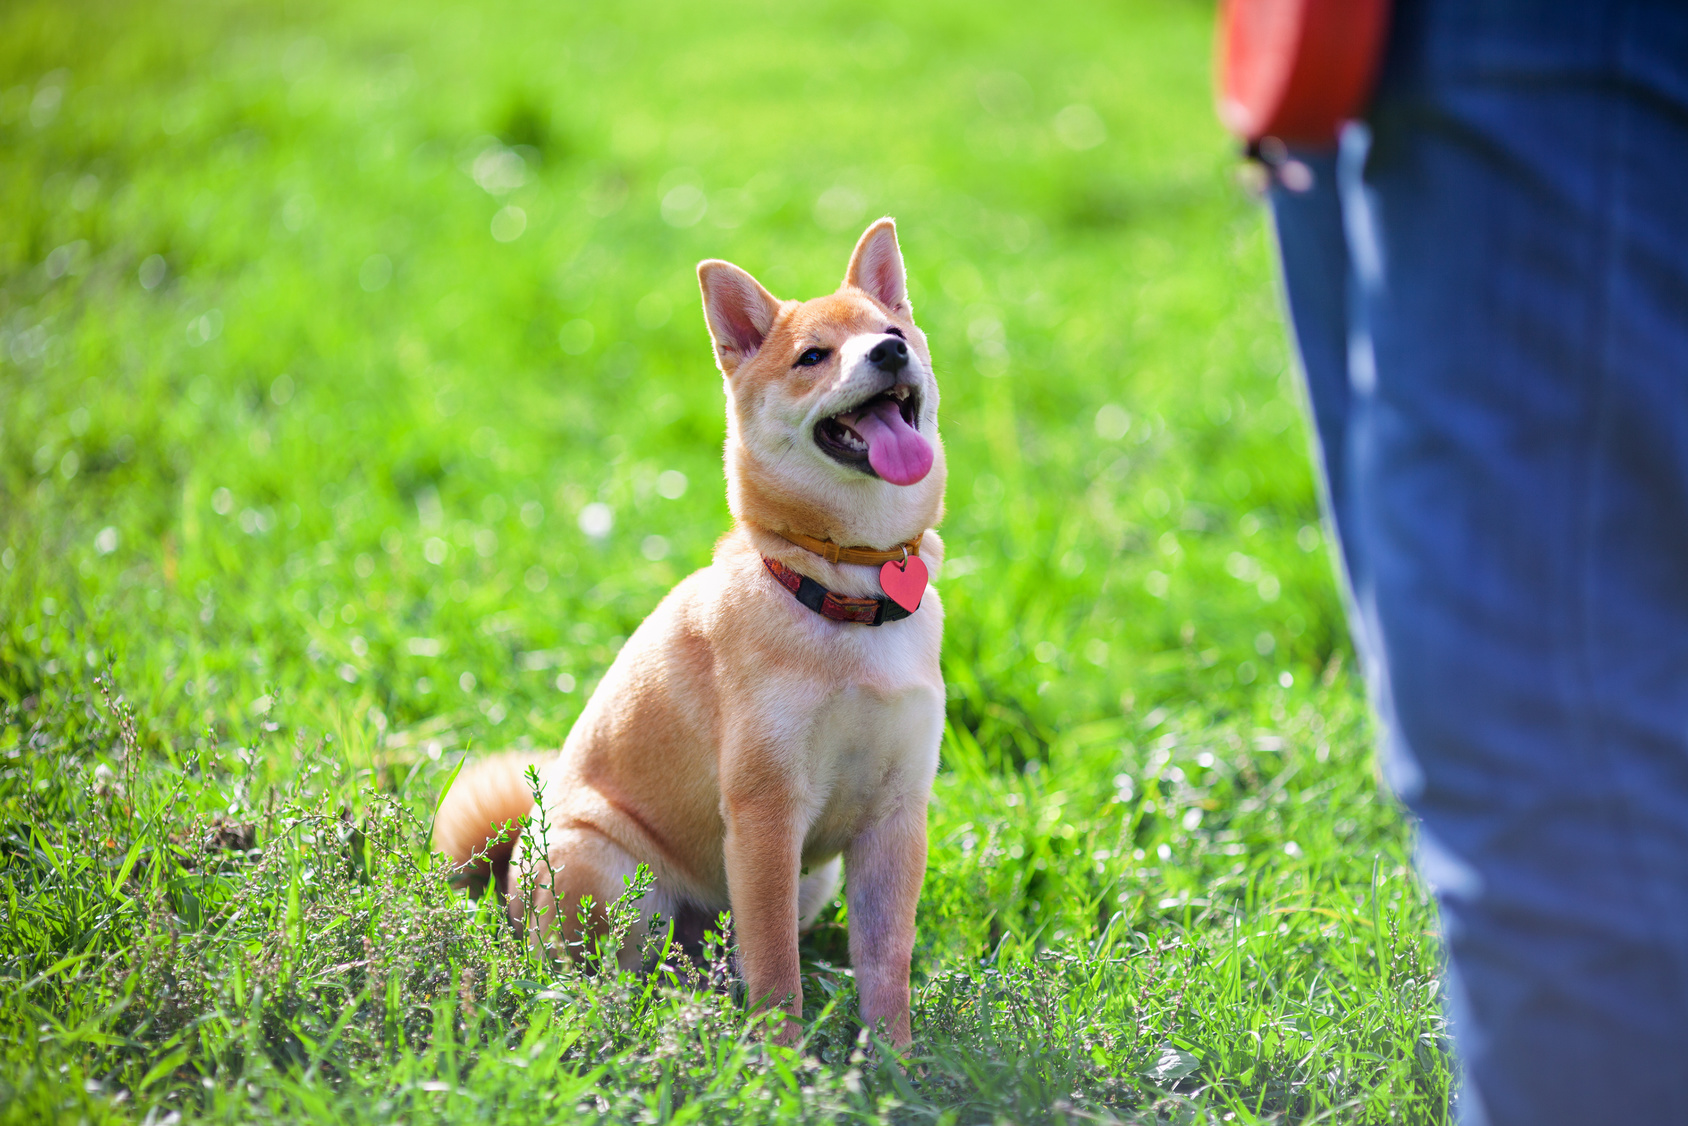 Obedience Training for Dogs | zooplus Magazine